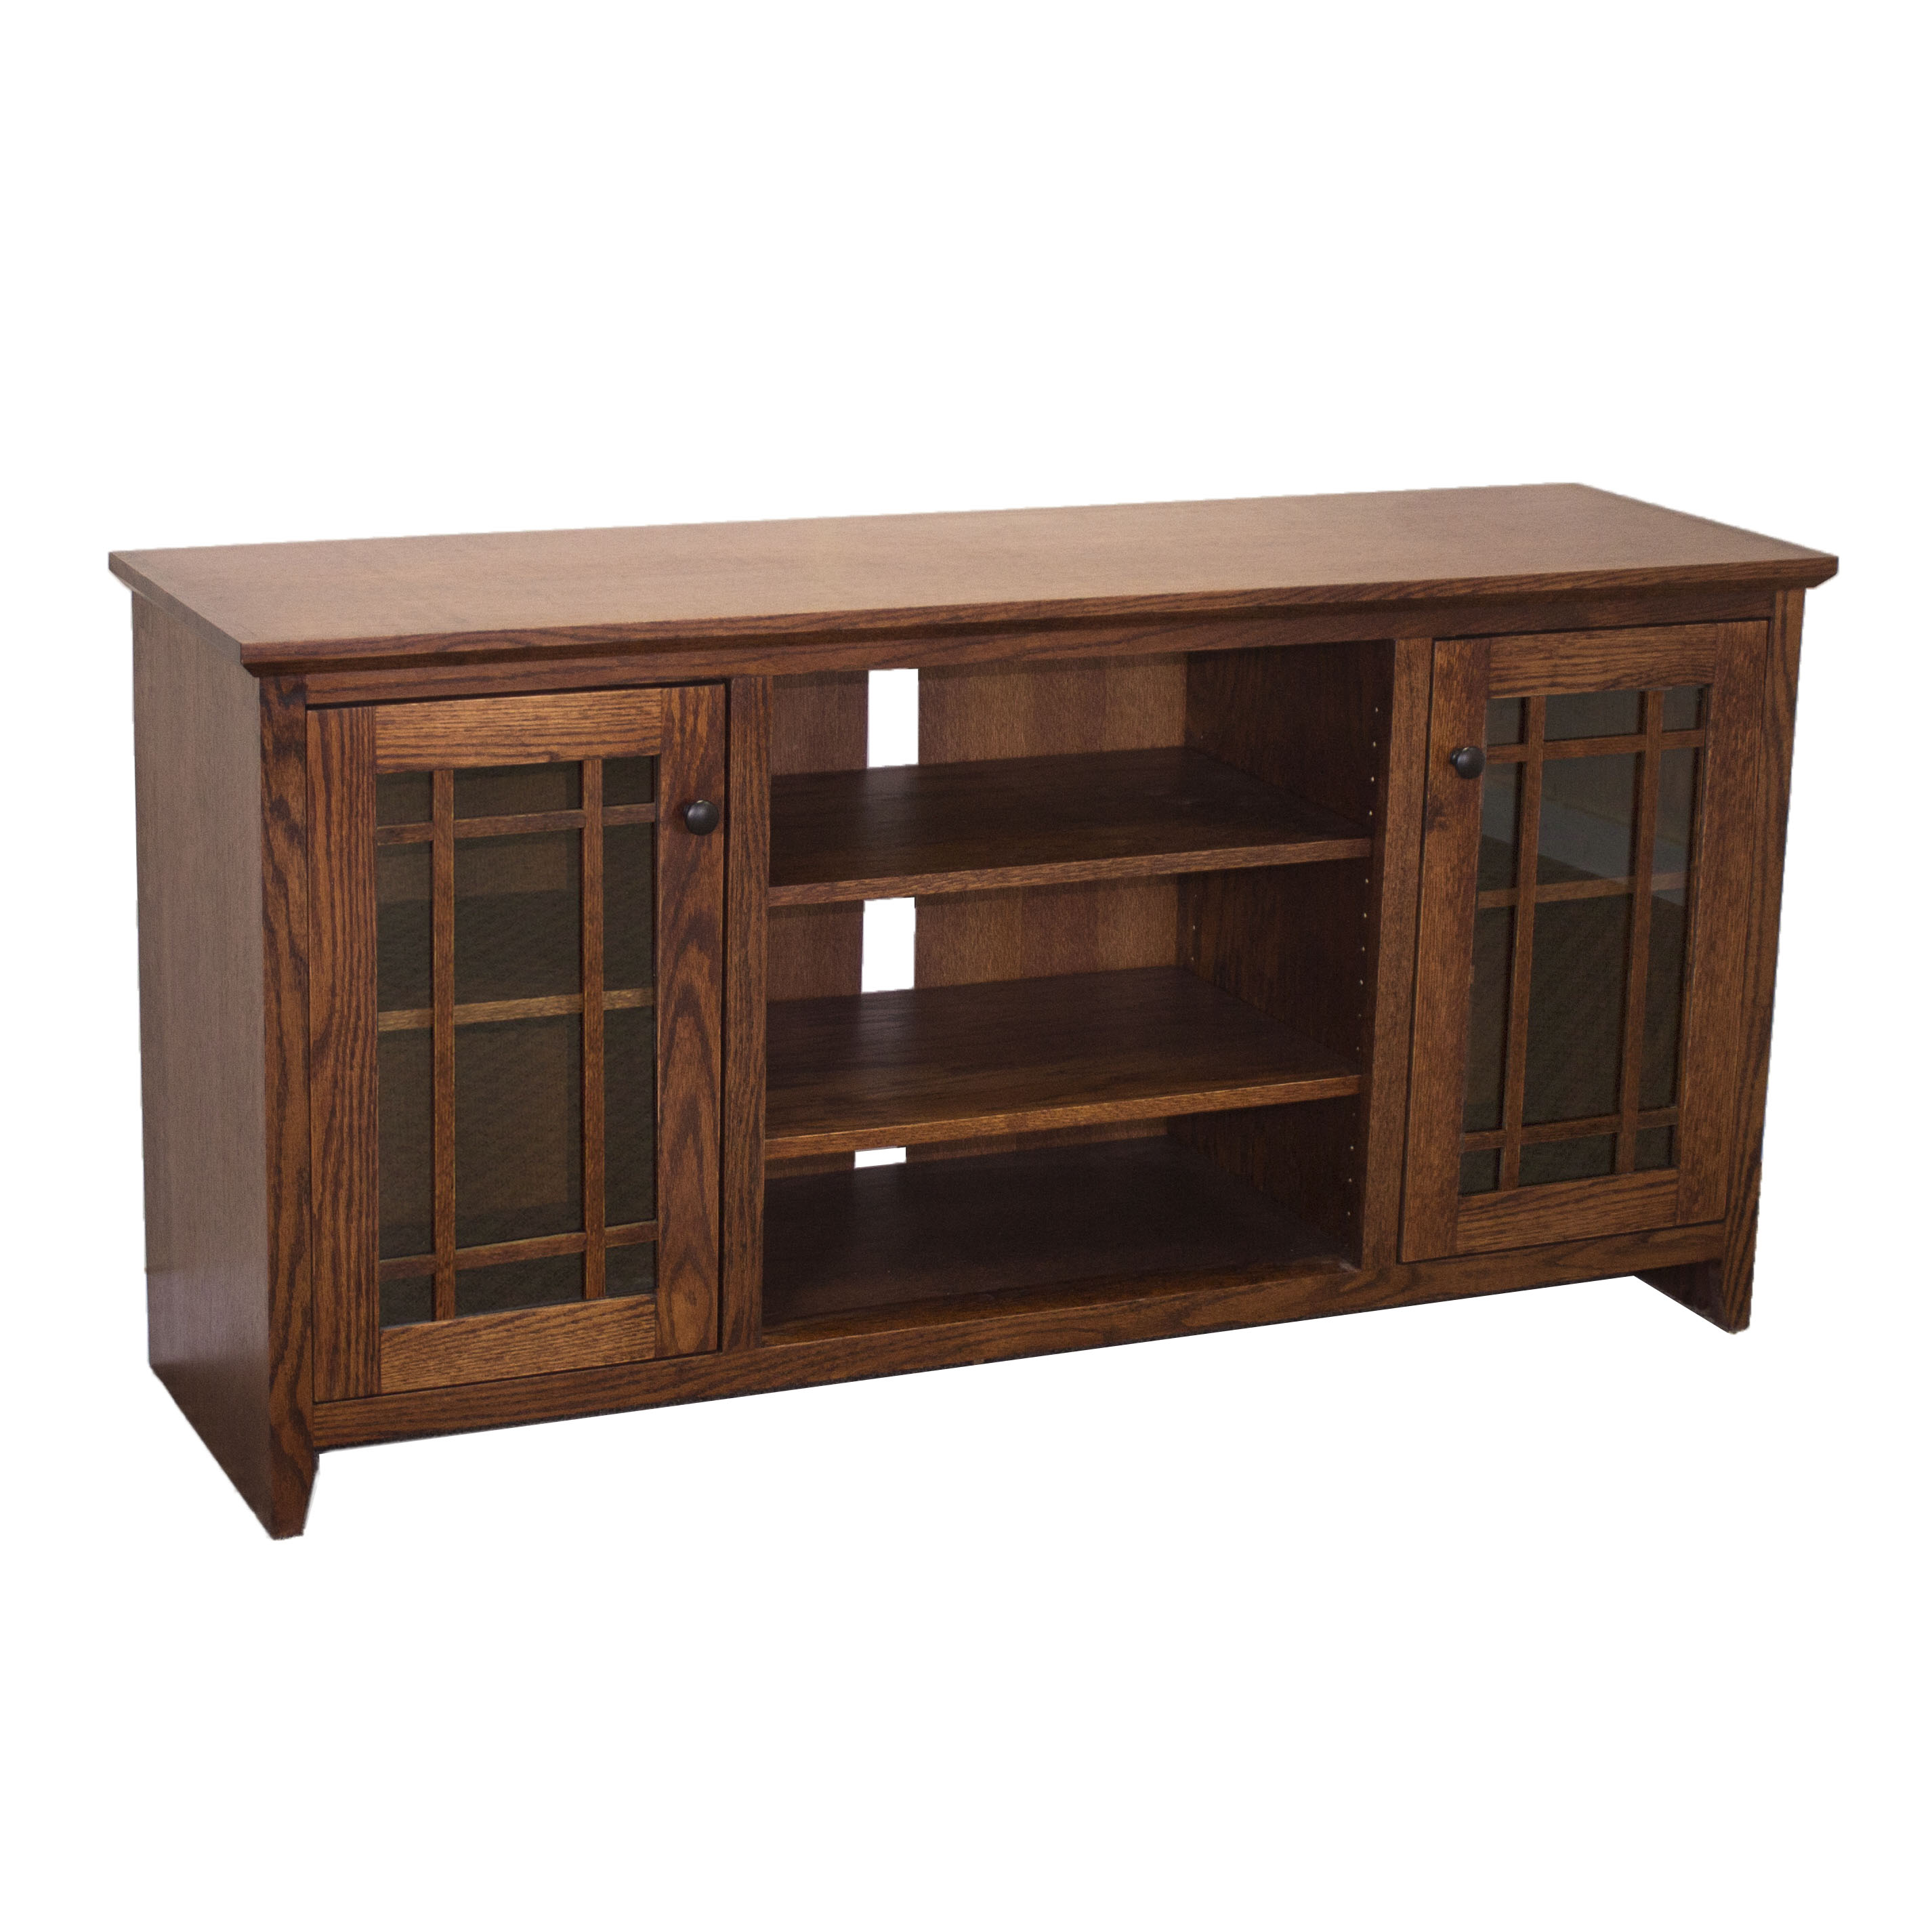 Oak Shaker TV Console w/ Grid